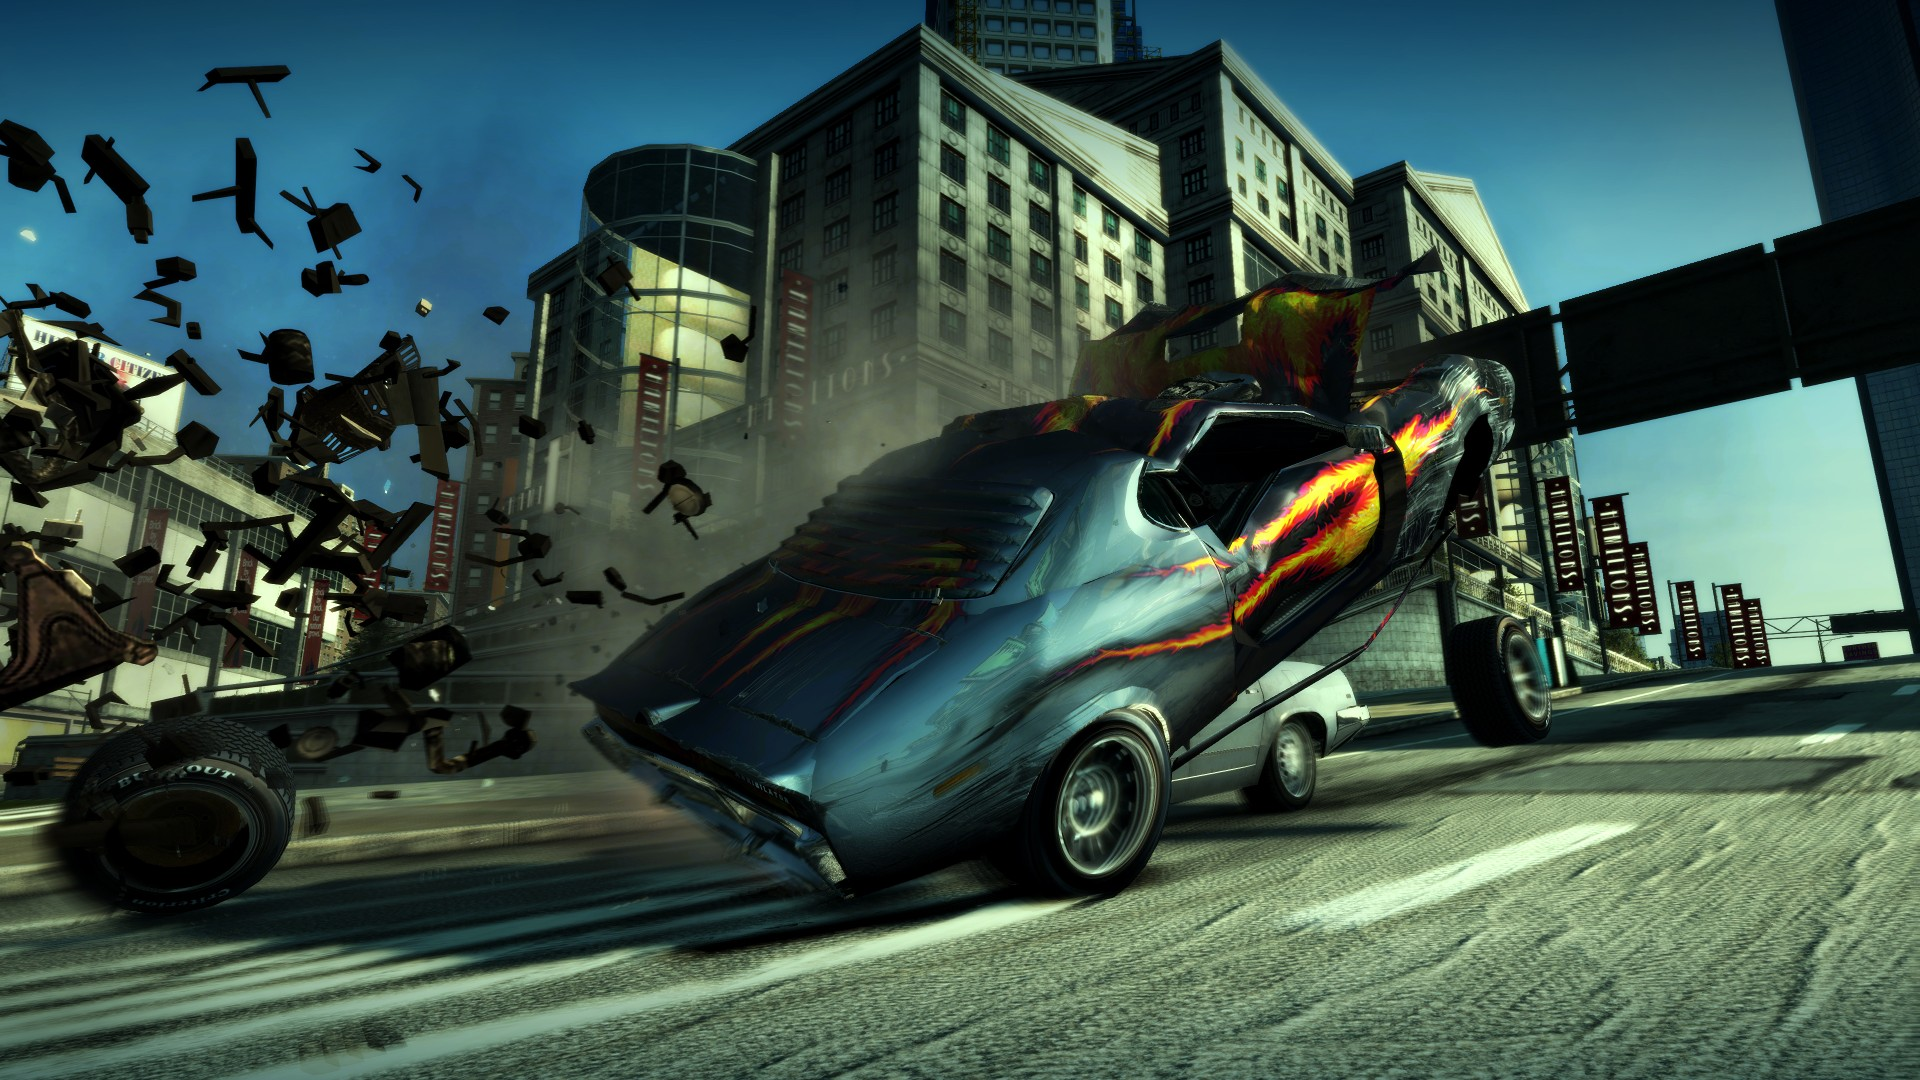 IMAGE(https://data3.origin.com/content/dam/originx/web/app/games/burnout/burnout-paradise-remastered/Screenshots/BOPR_Screenshot_4k_24_CrashMuscleRamp_NoLogos.jpg)